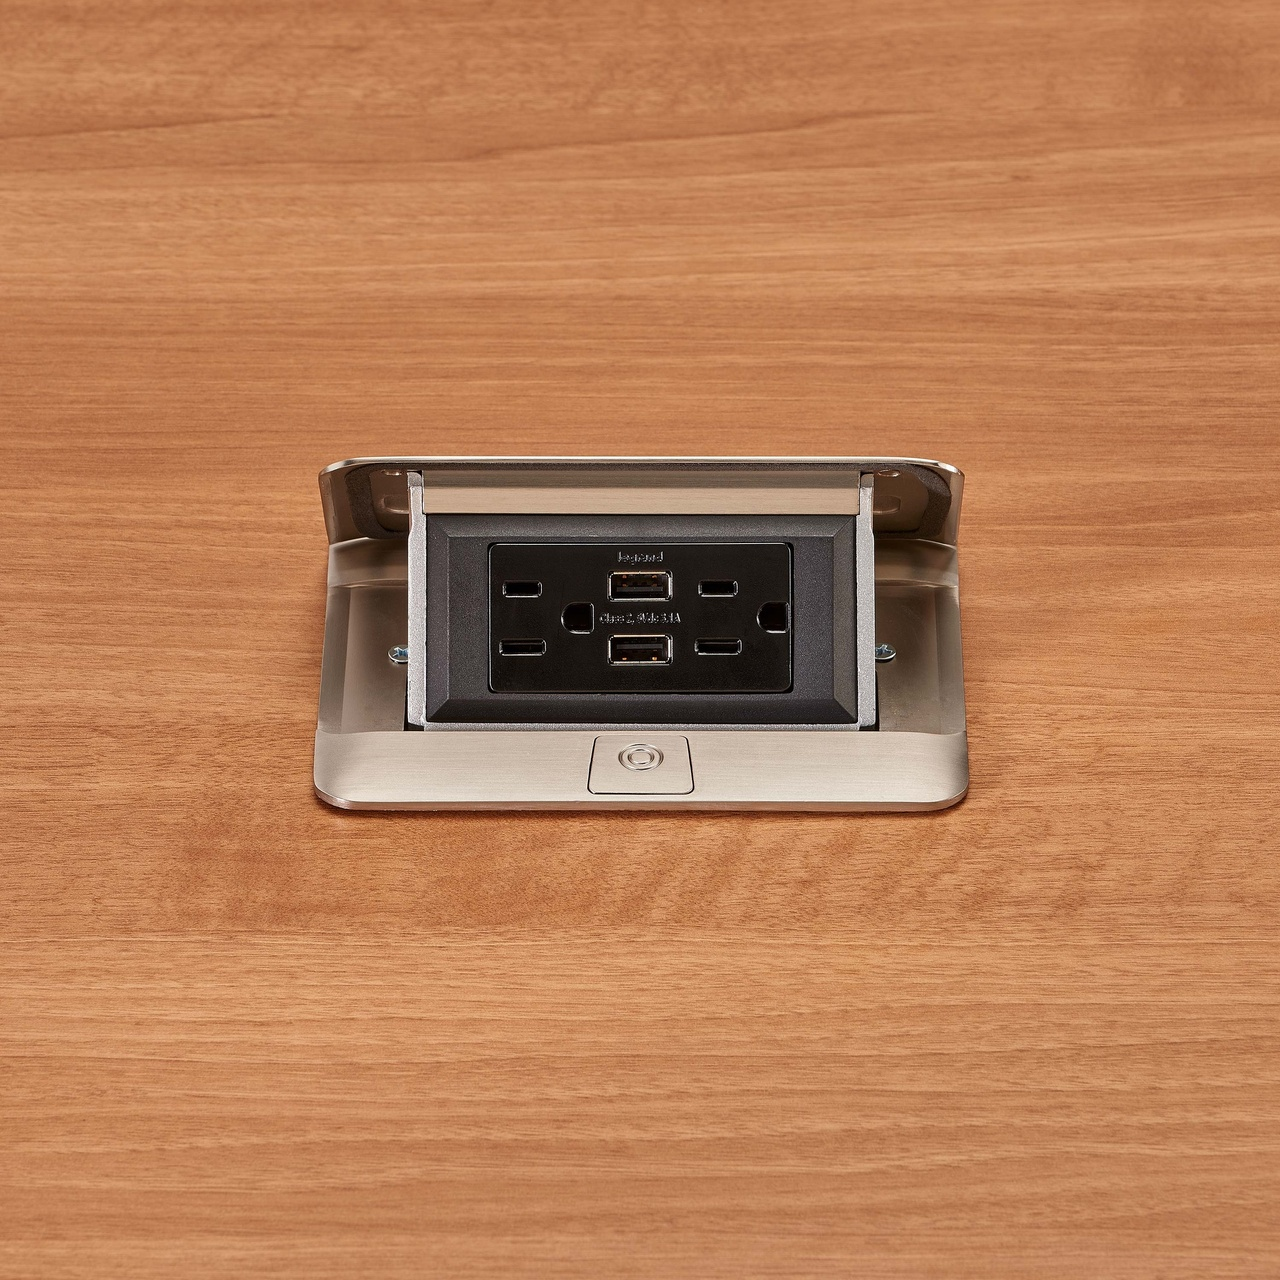 deQuorum Flip-Up Table Box 1-Gang 15A recep 3.1A USB, stainless steel finish-open view, DQFP15UST